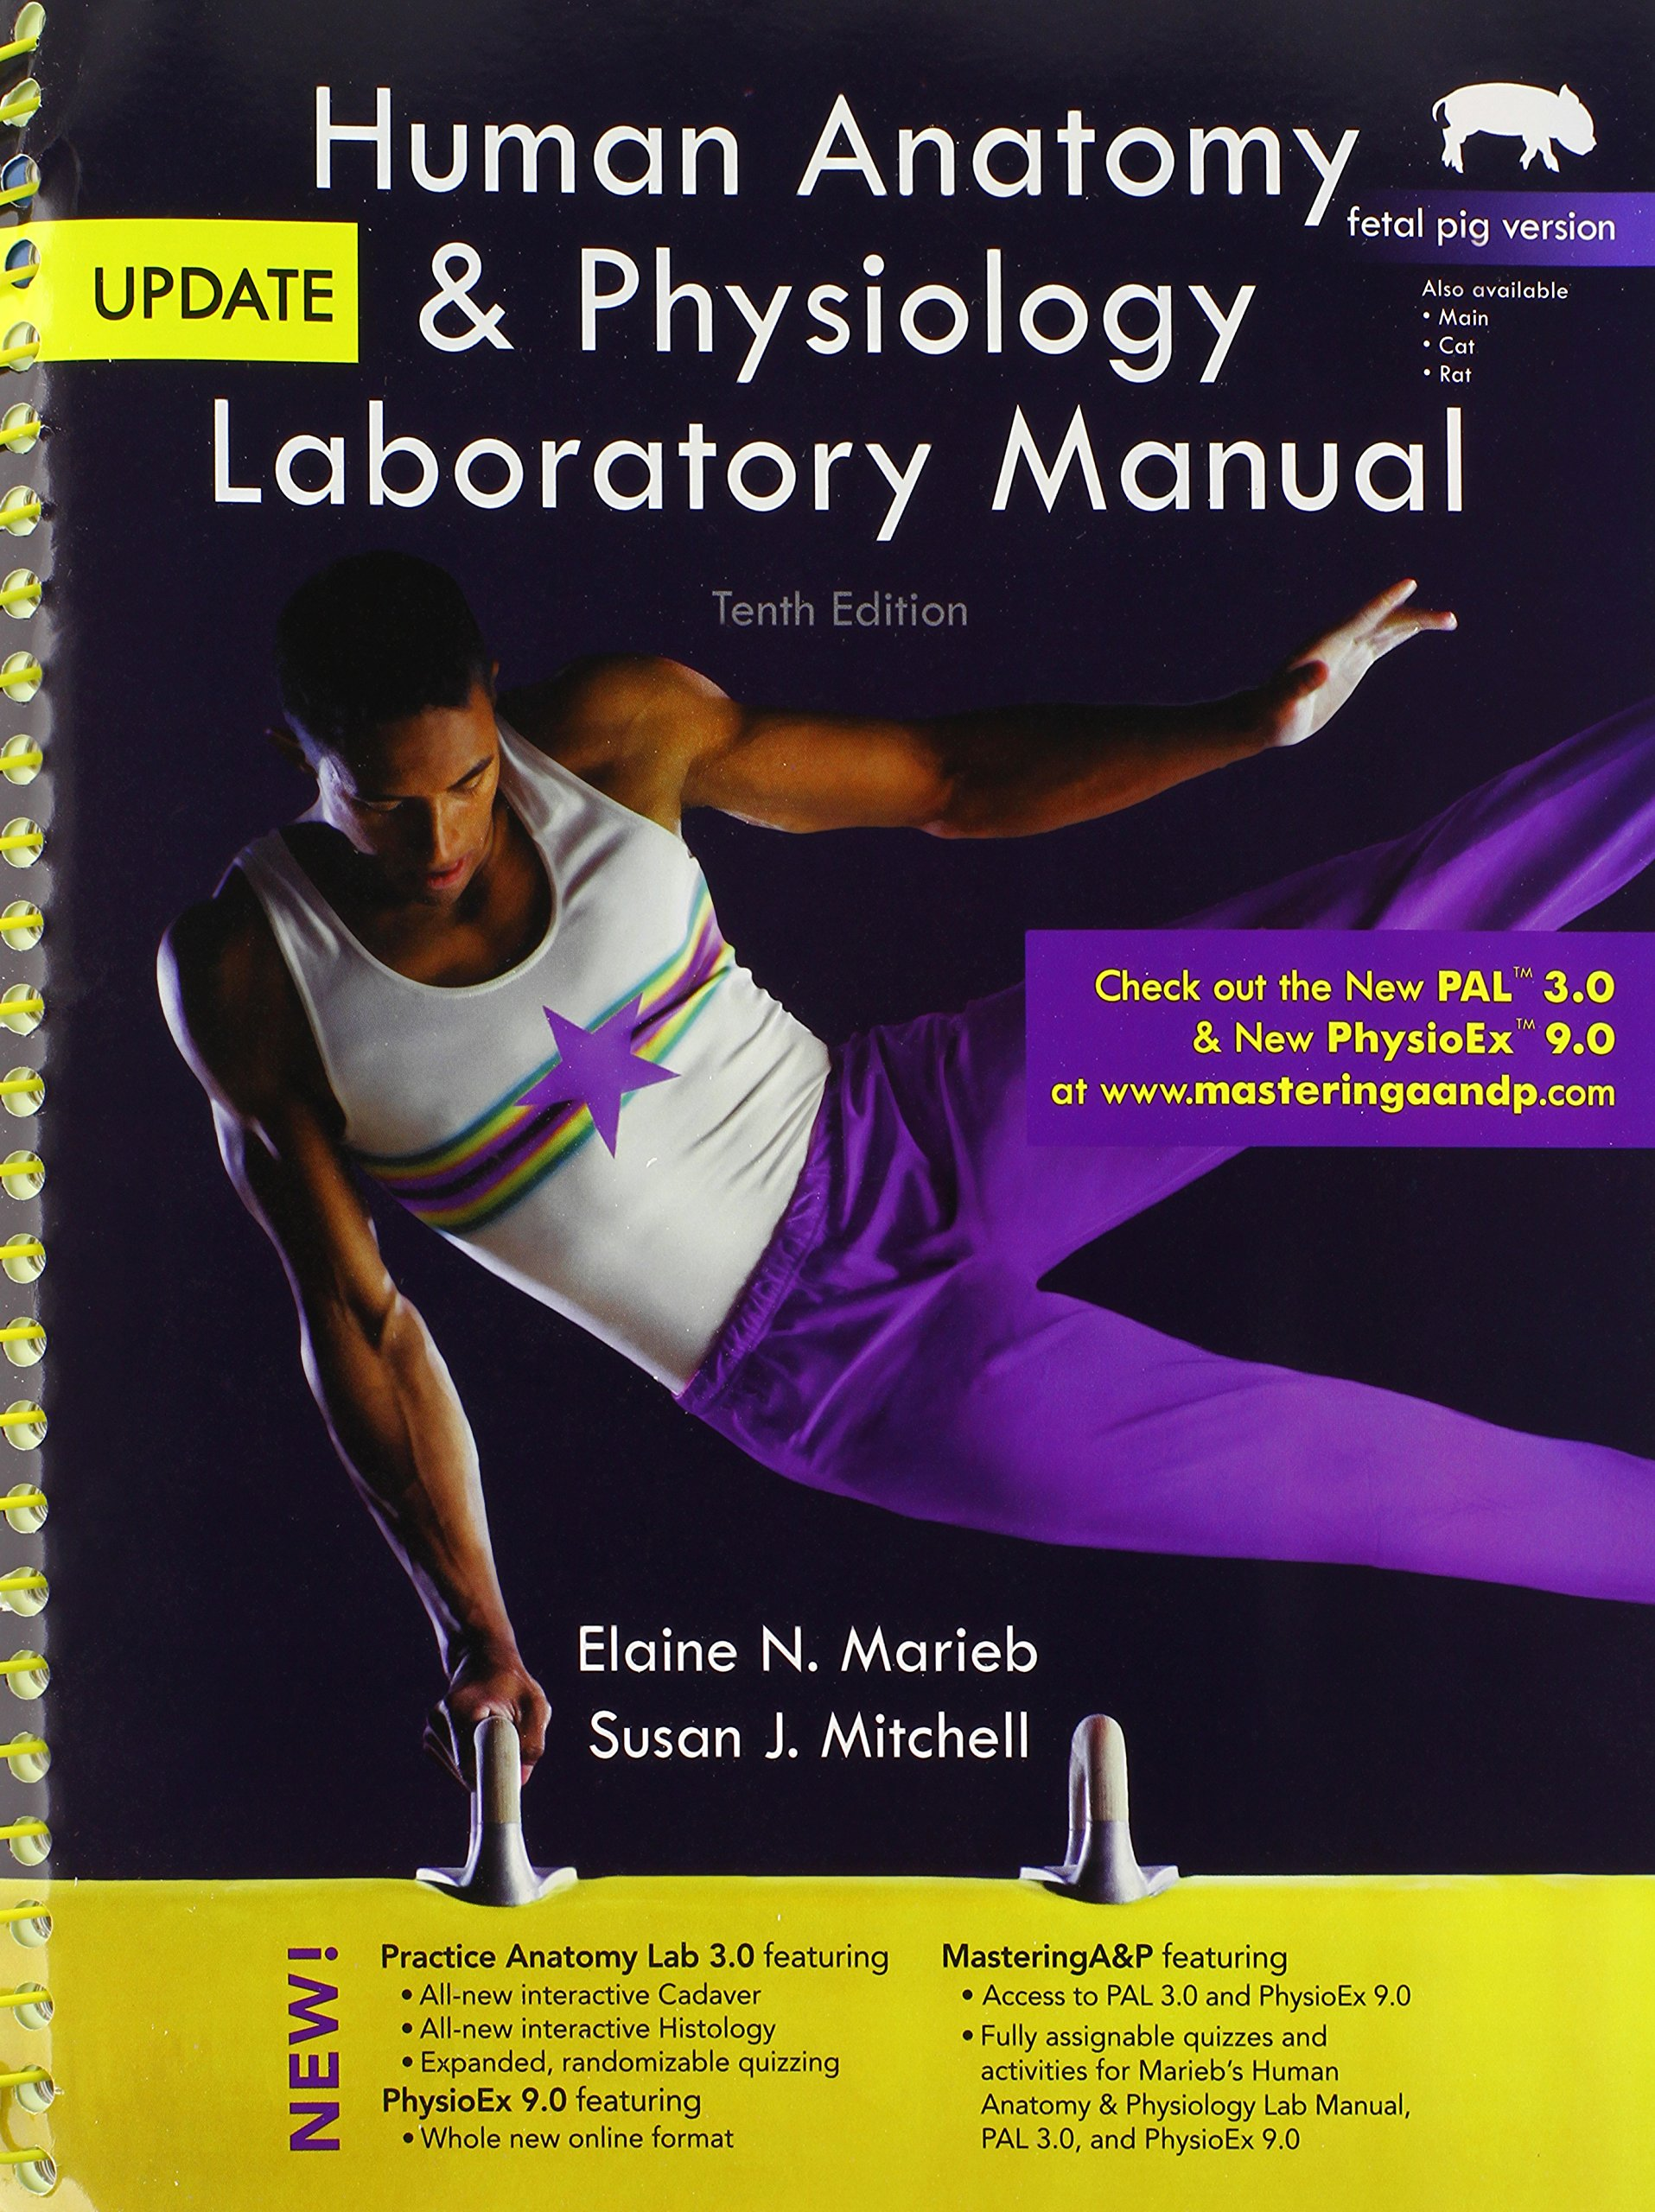 Fantastisch Marieb Anatomy And Physiology Lab Manual Galerie ...